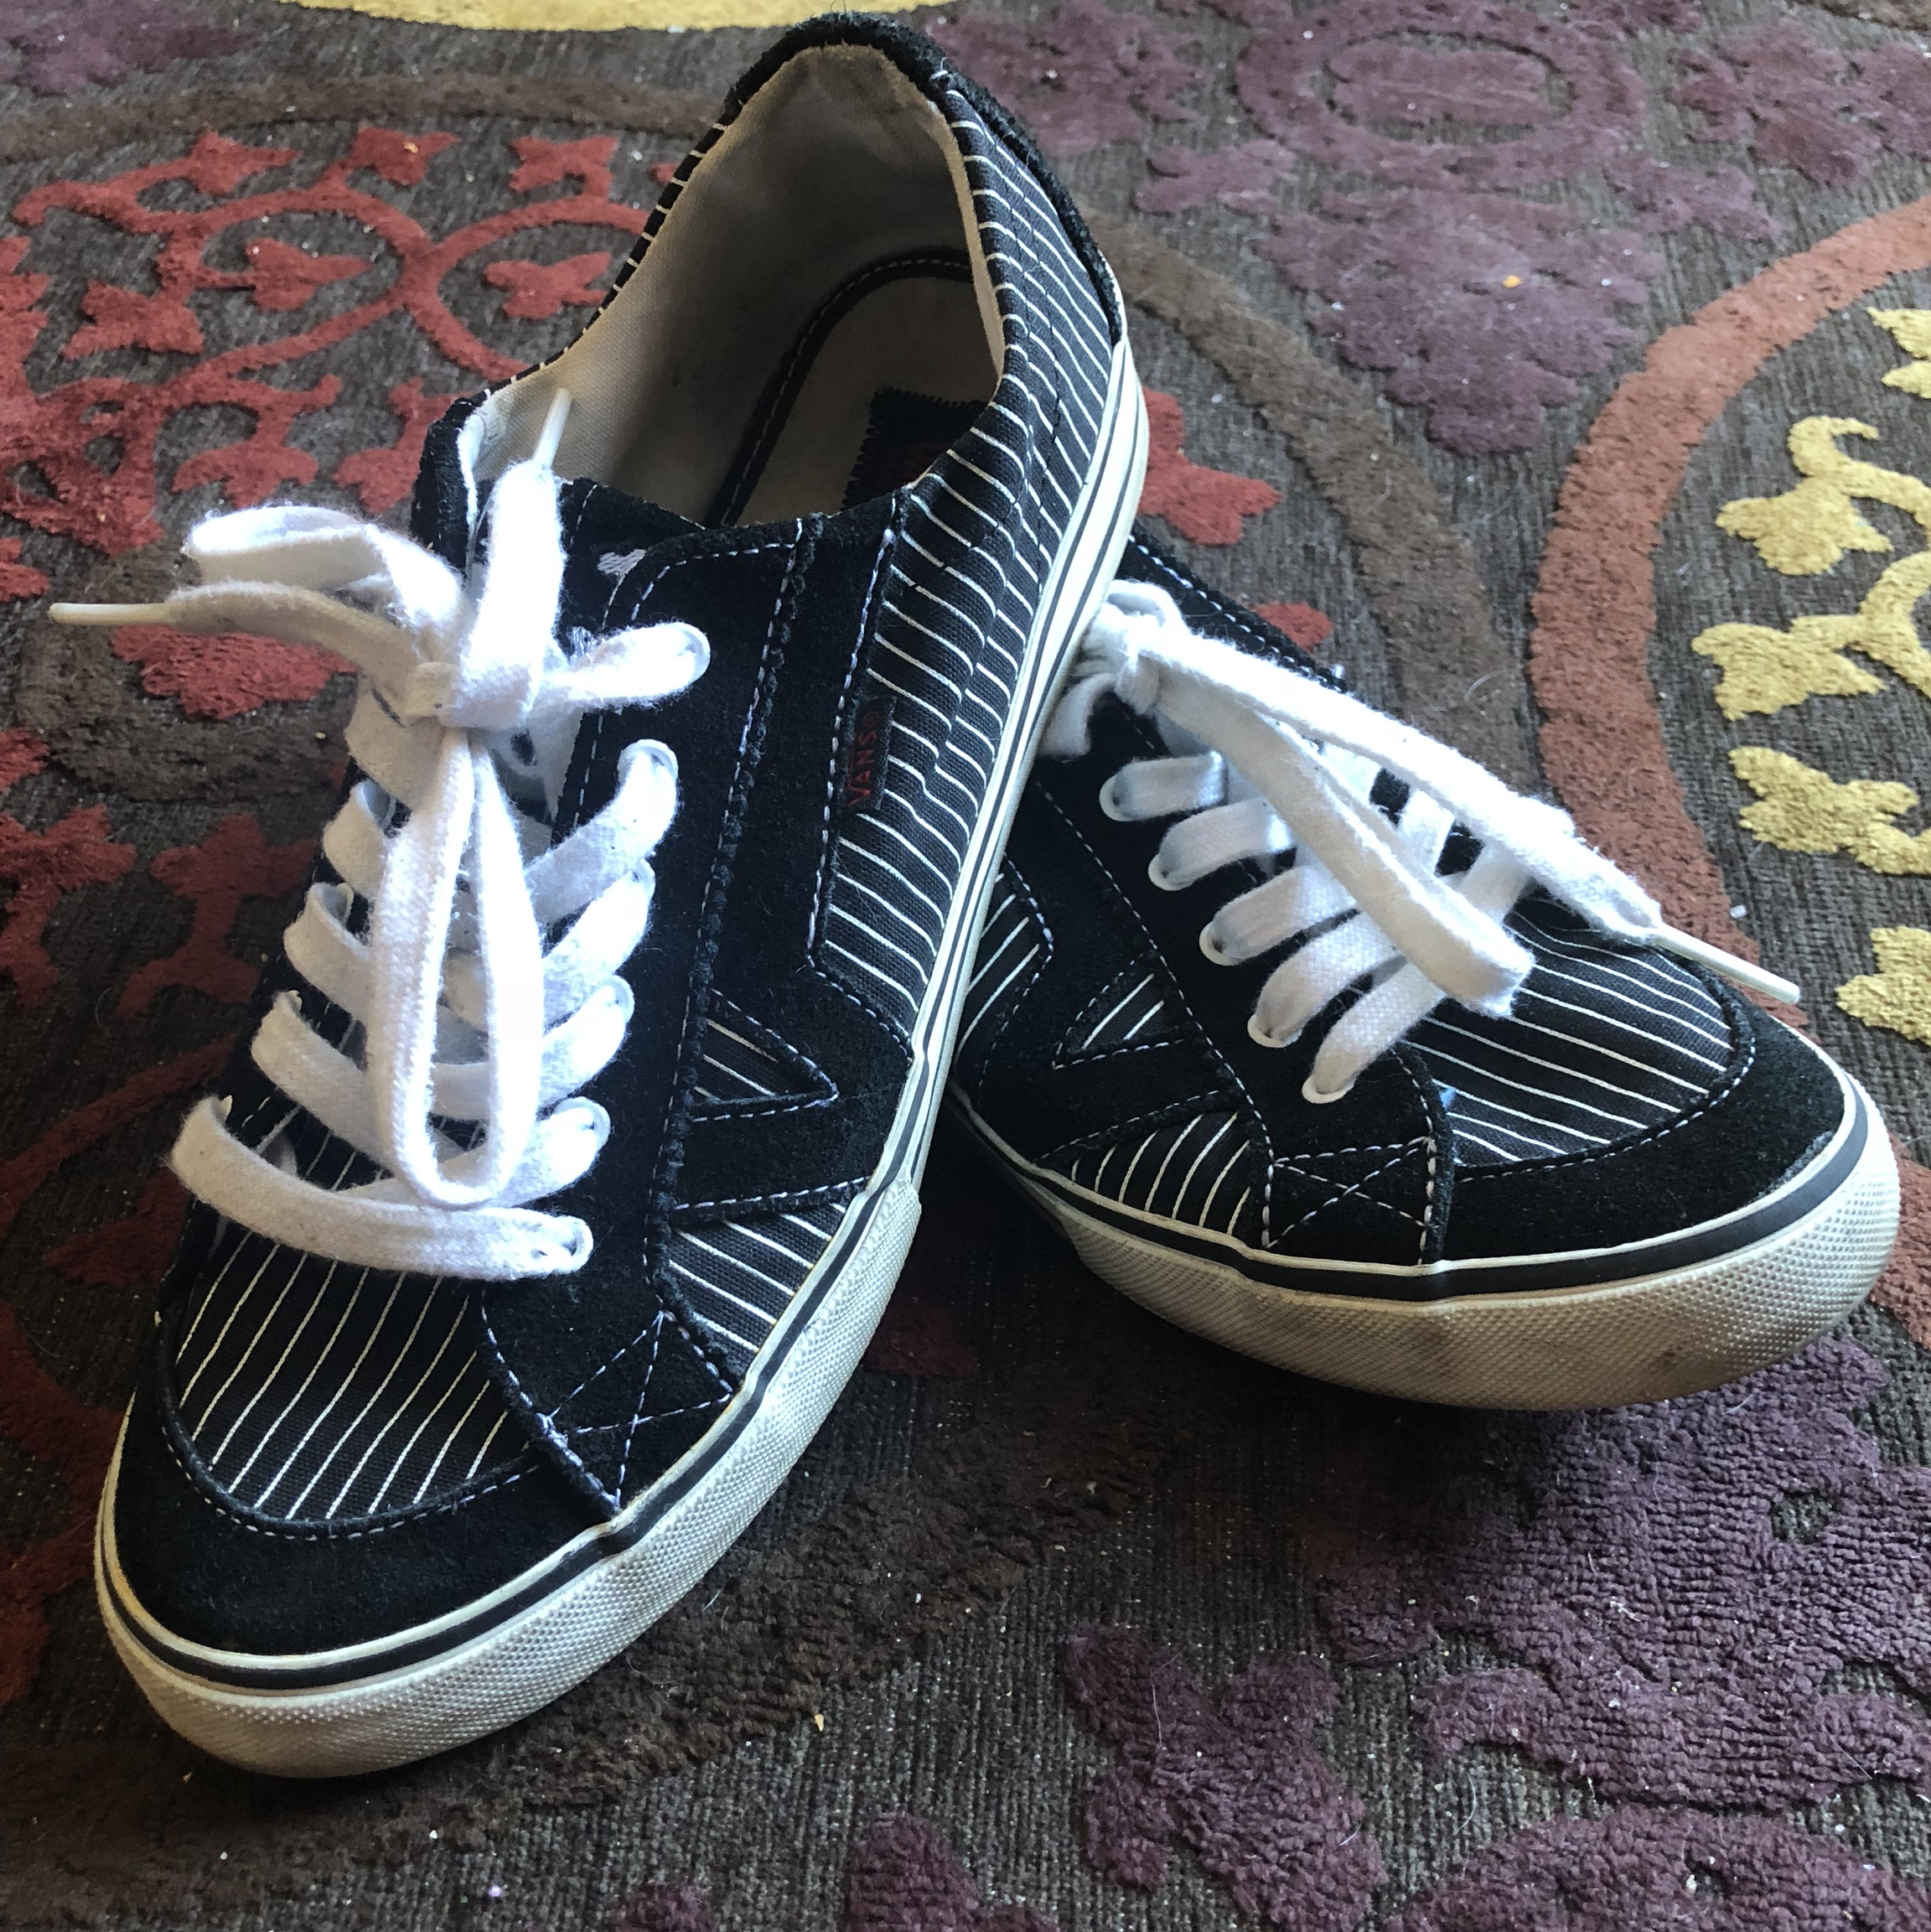 VANS Size 7.5 Tory black and white